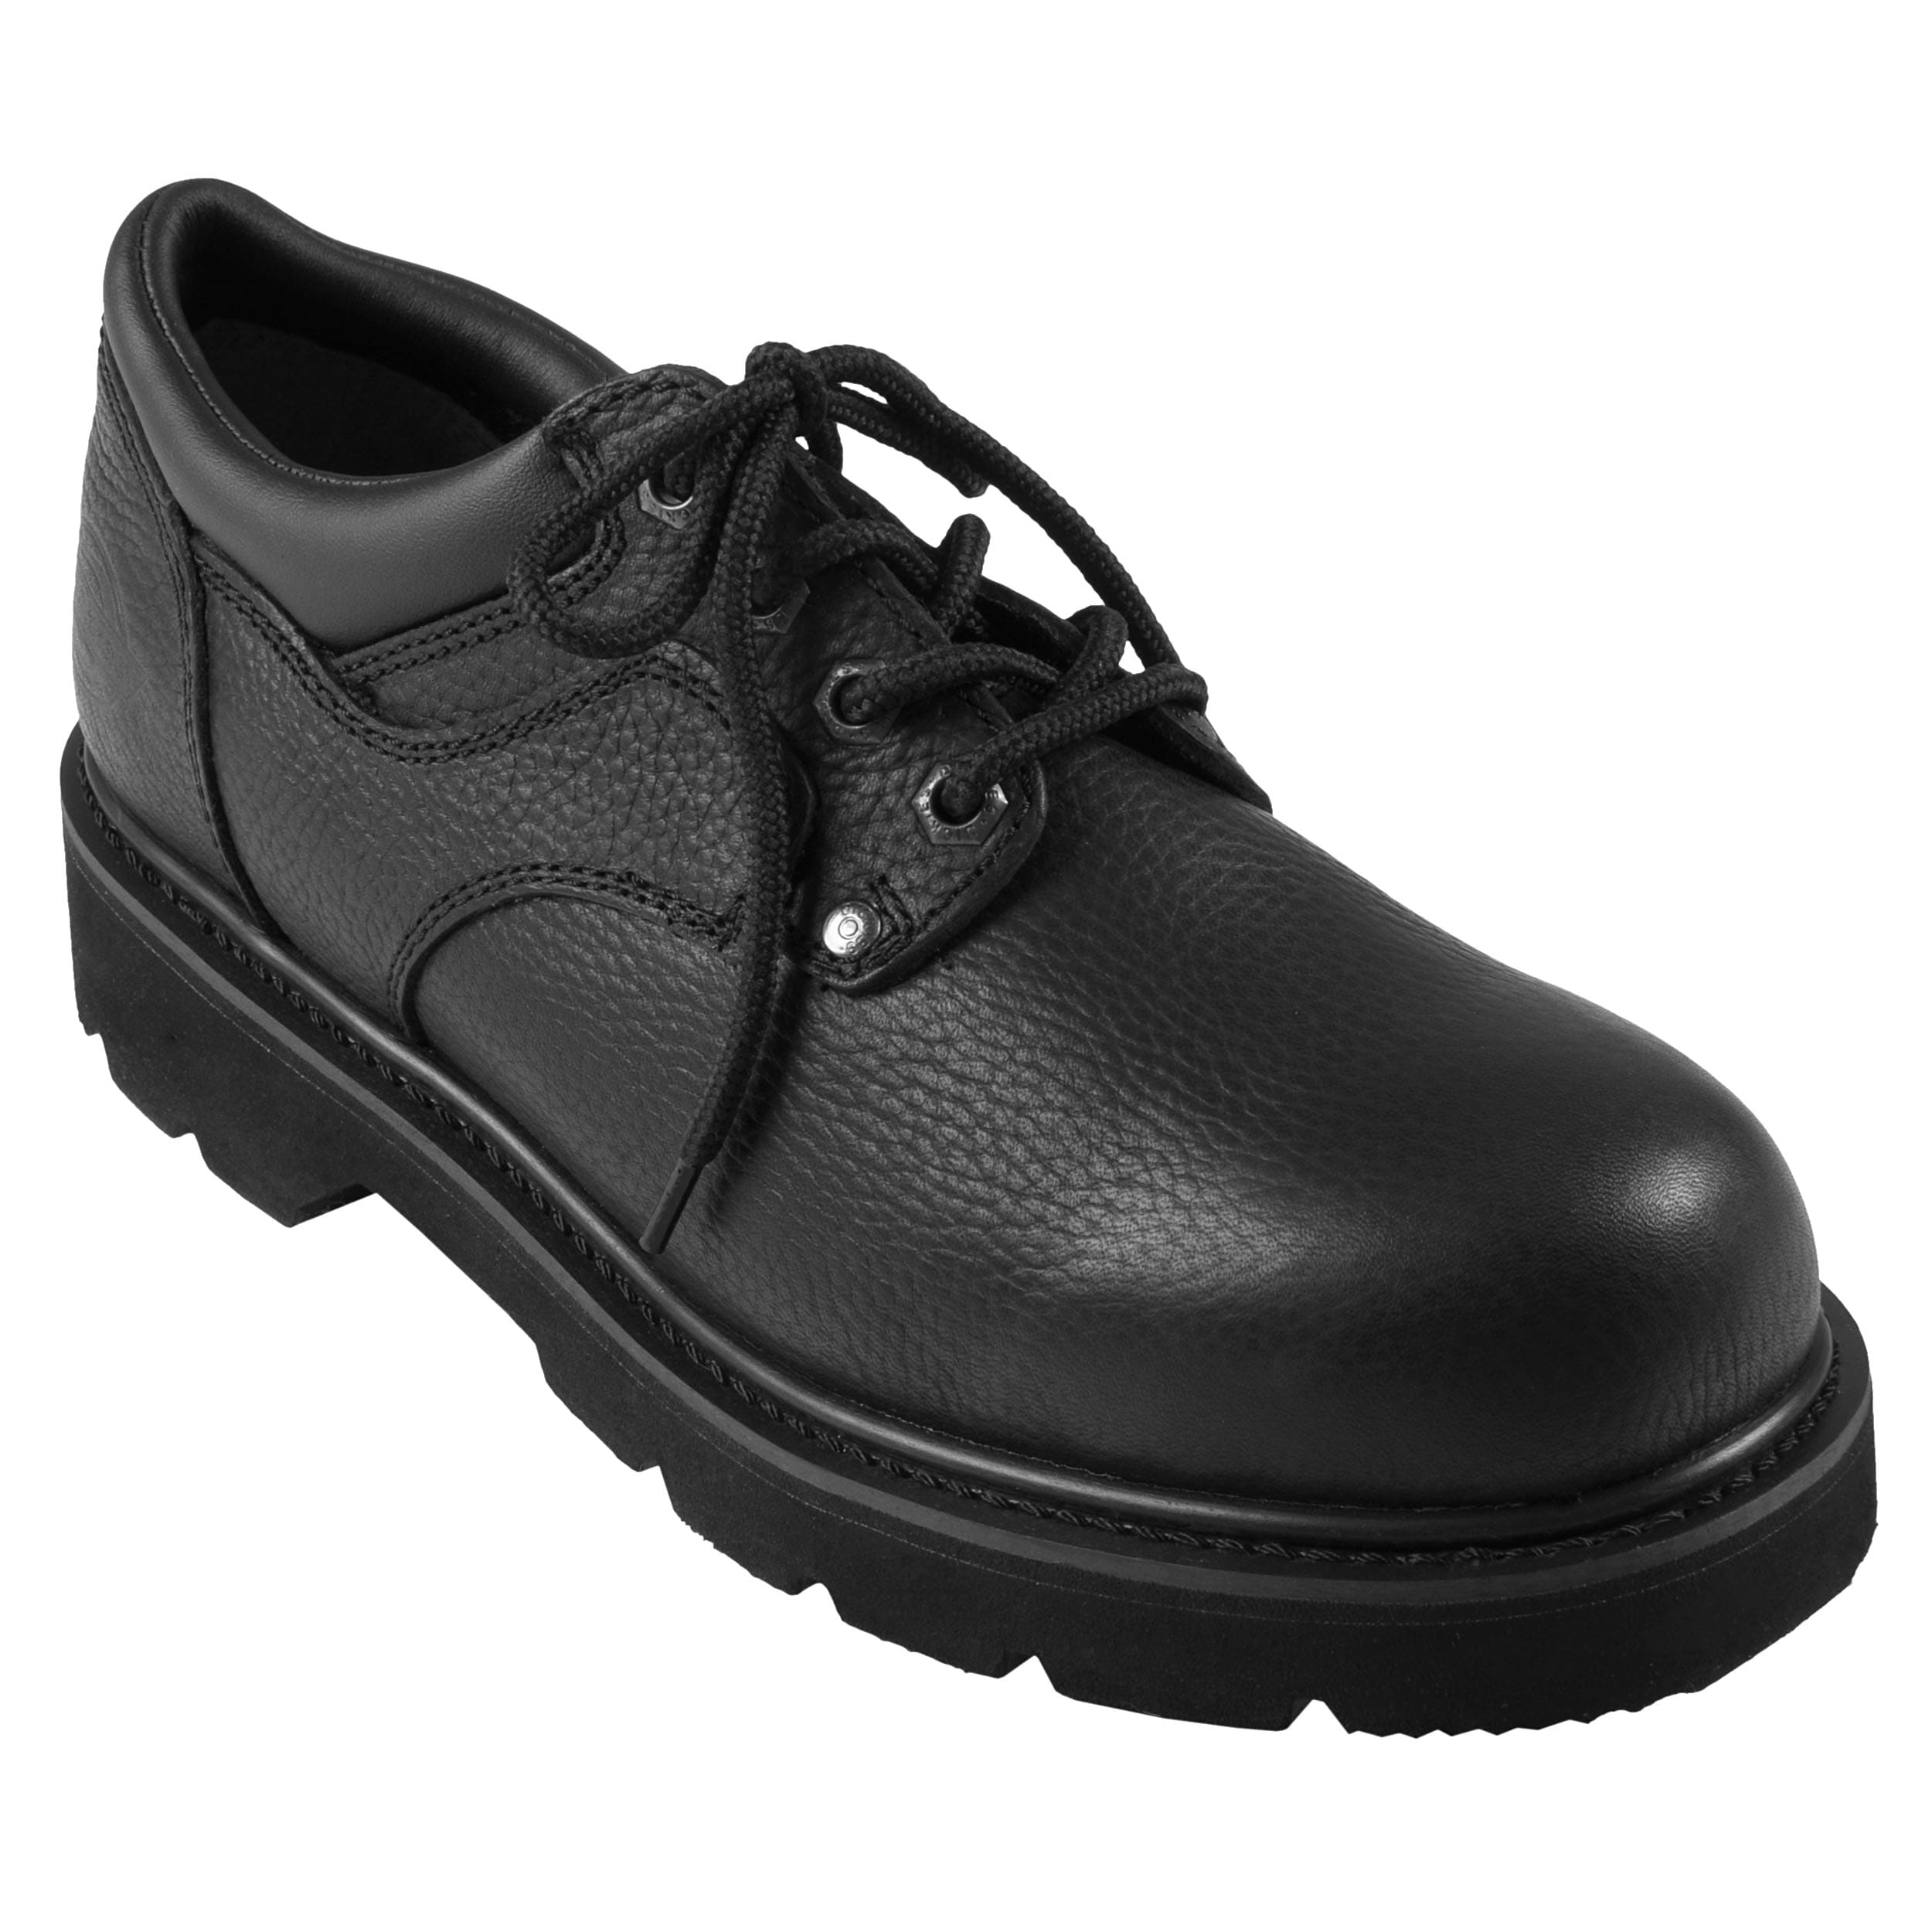 Dickies Men's Oxford Lug Sole Genuine Leather Lace-up Shoe